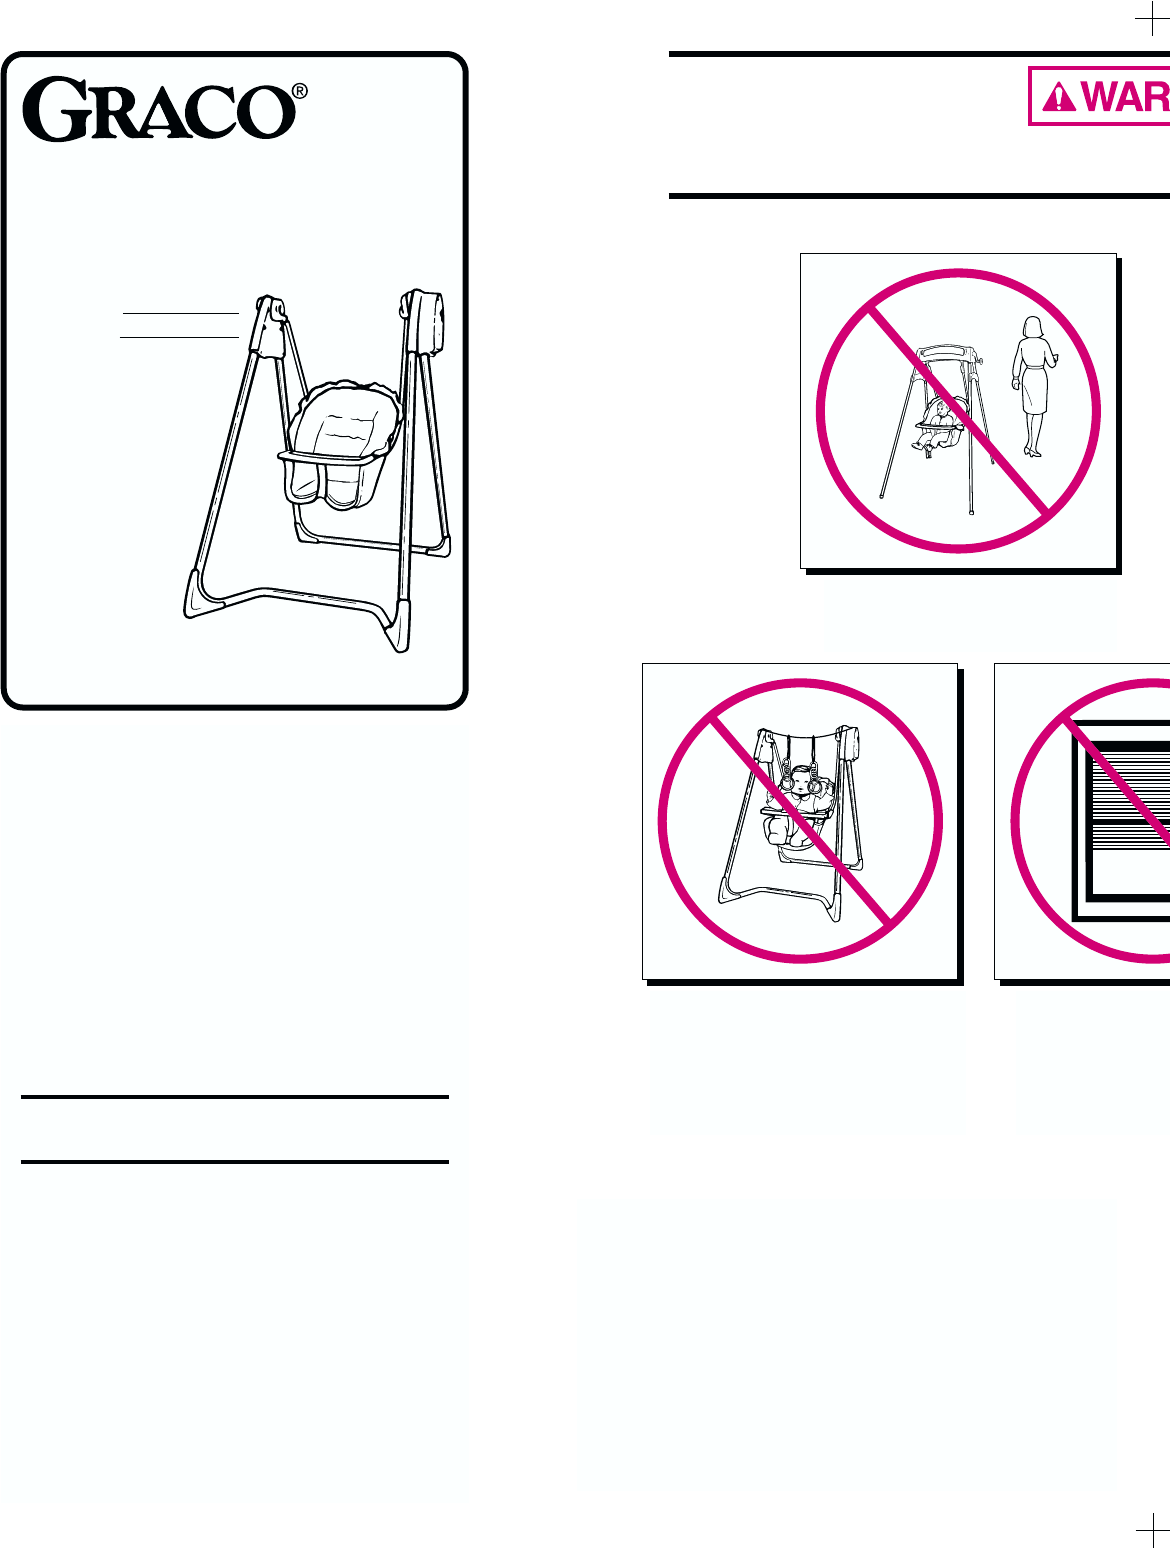 Graco Disney Swing Instructions